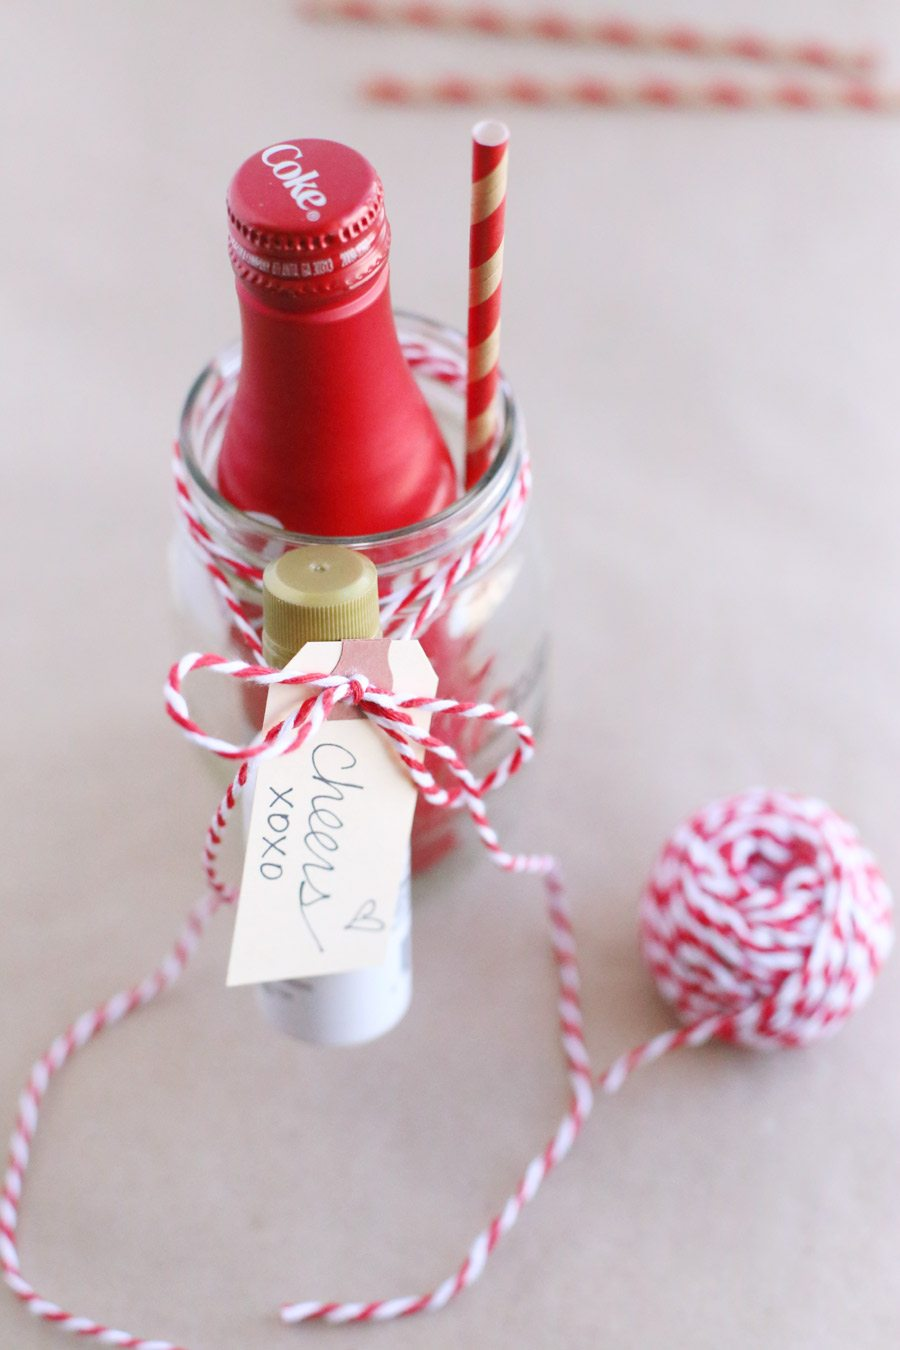 DIY Cocktails to Go for Valentine's Day from @cydconverse